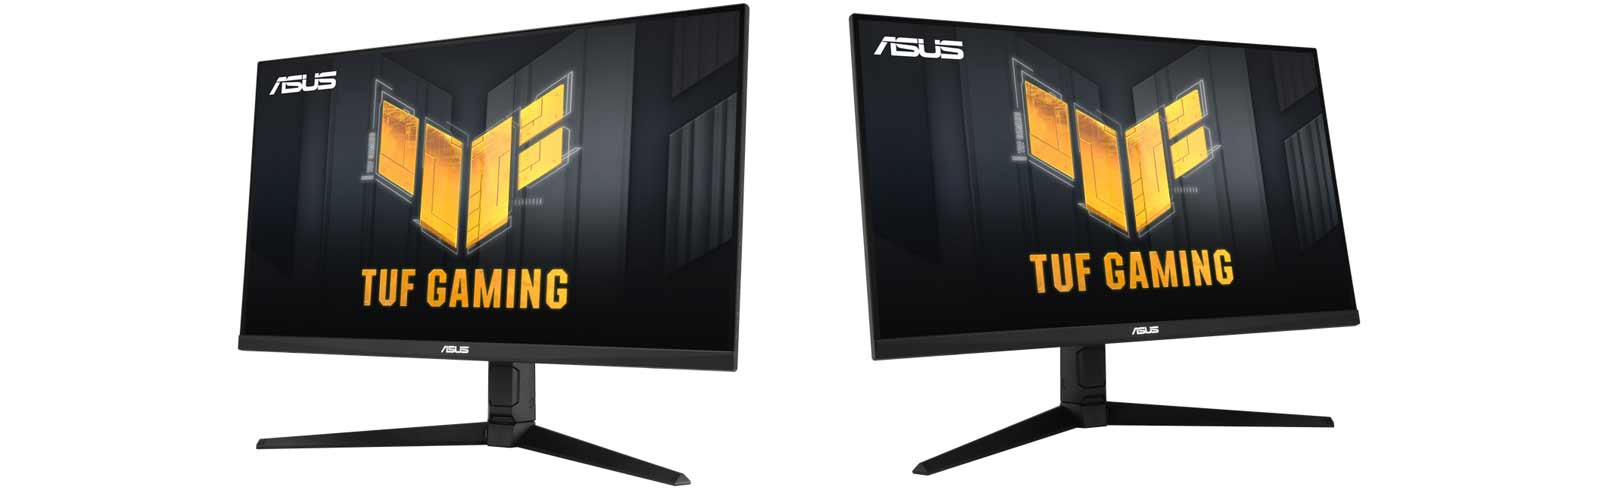 """The Asus TUF Gaming VG32AQL1A is launched with a 31.5"""" QHD Fast IPS display and 170Hz refresh rate"""